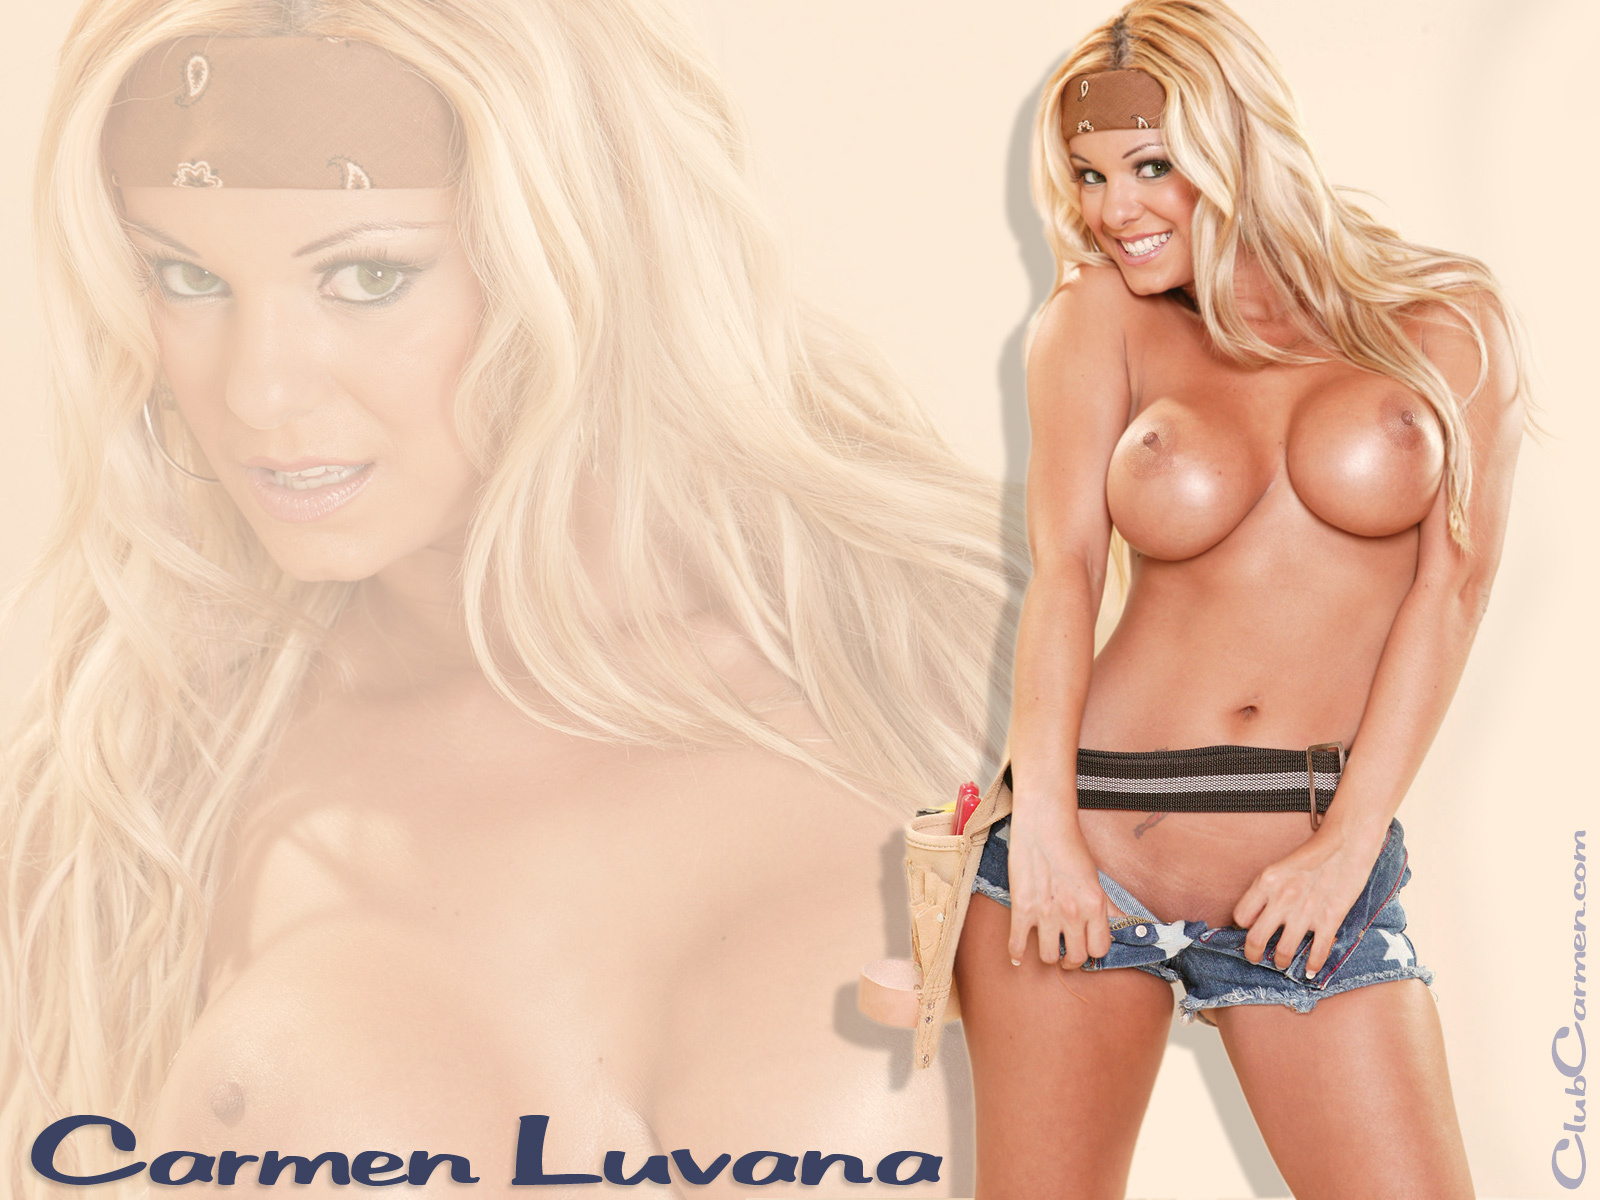 Carmen luvana sex wallpaper porncraft tube